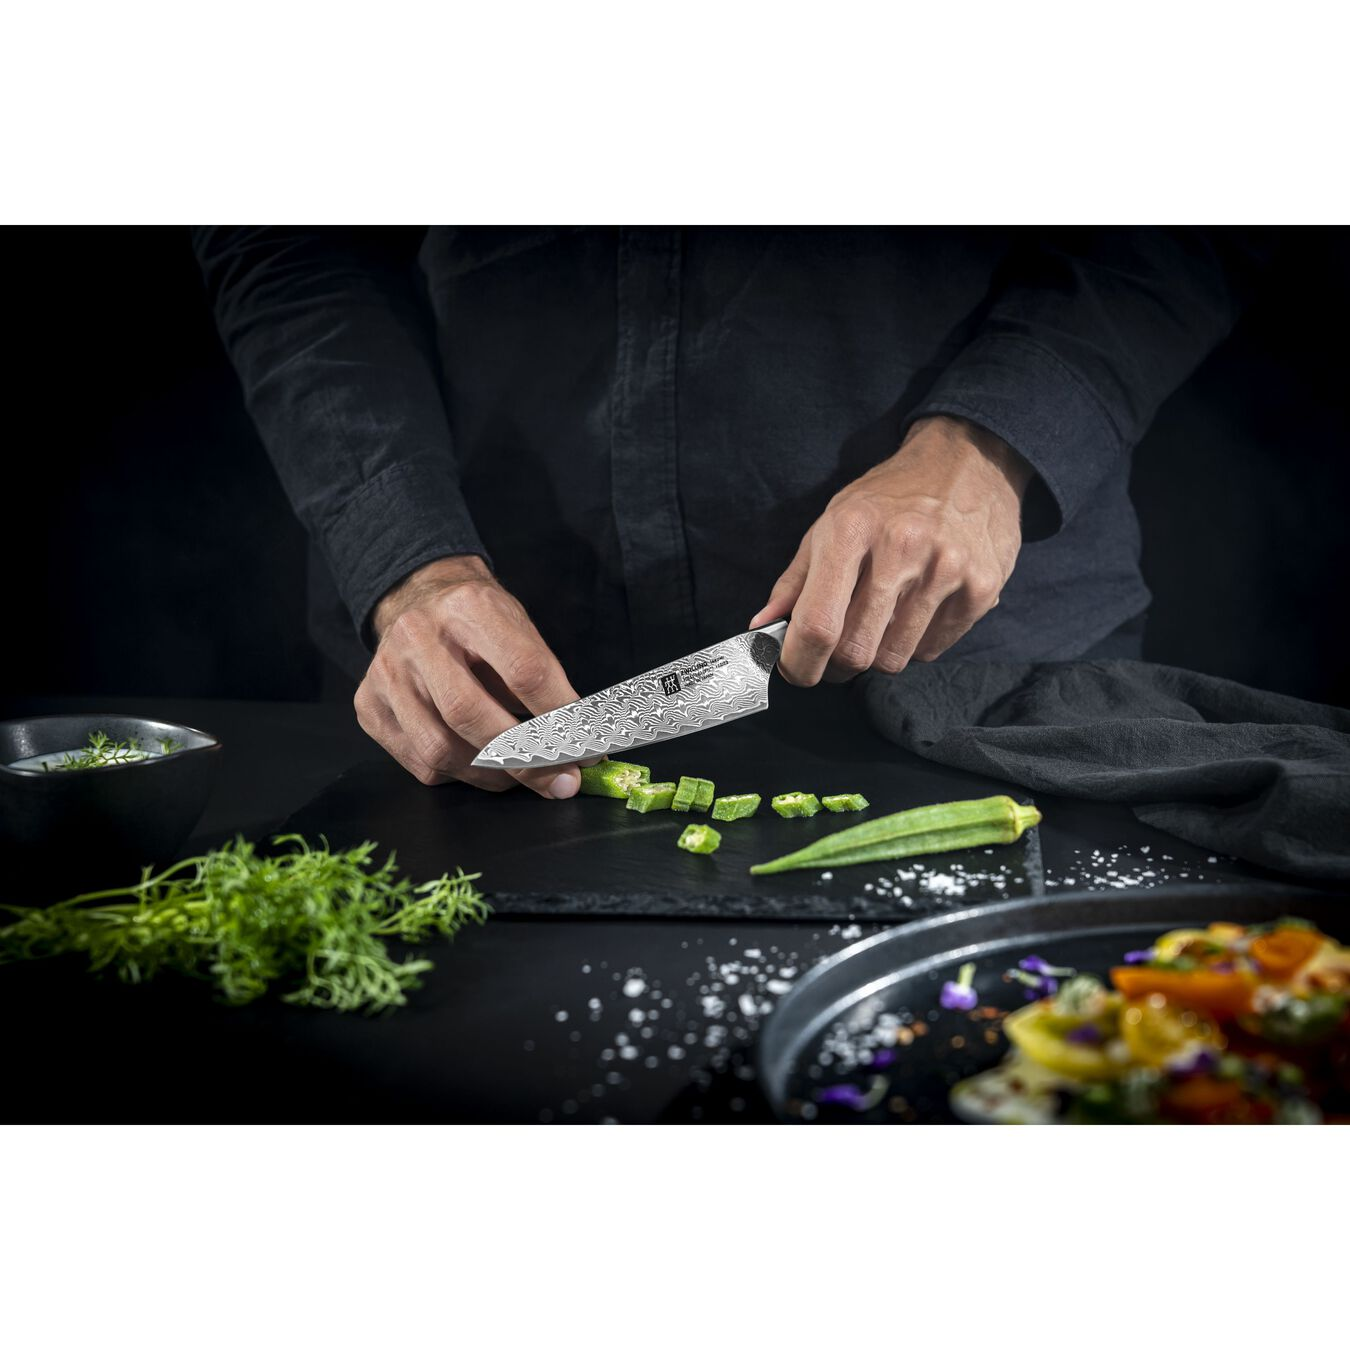 5.5 inch Chef's knife compact,,large 4